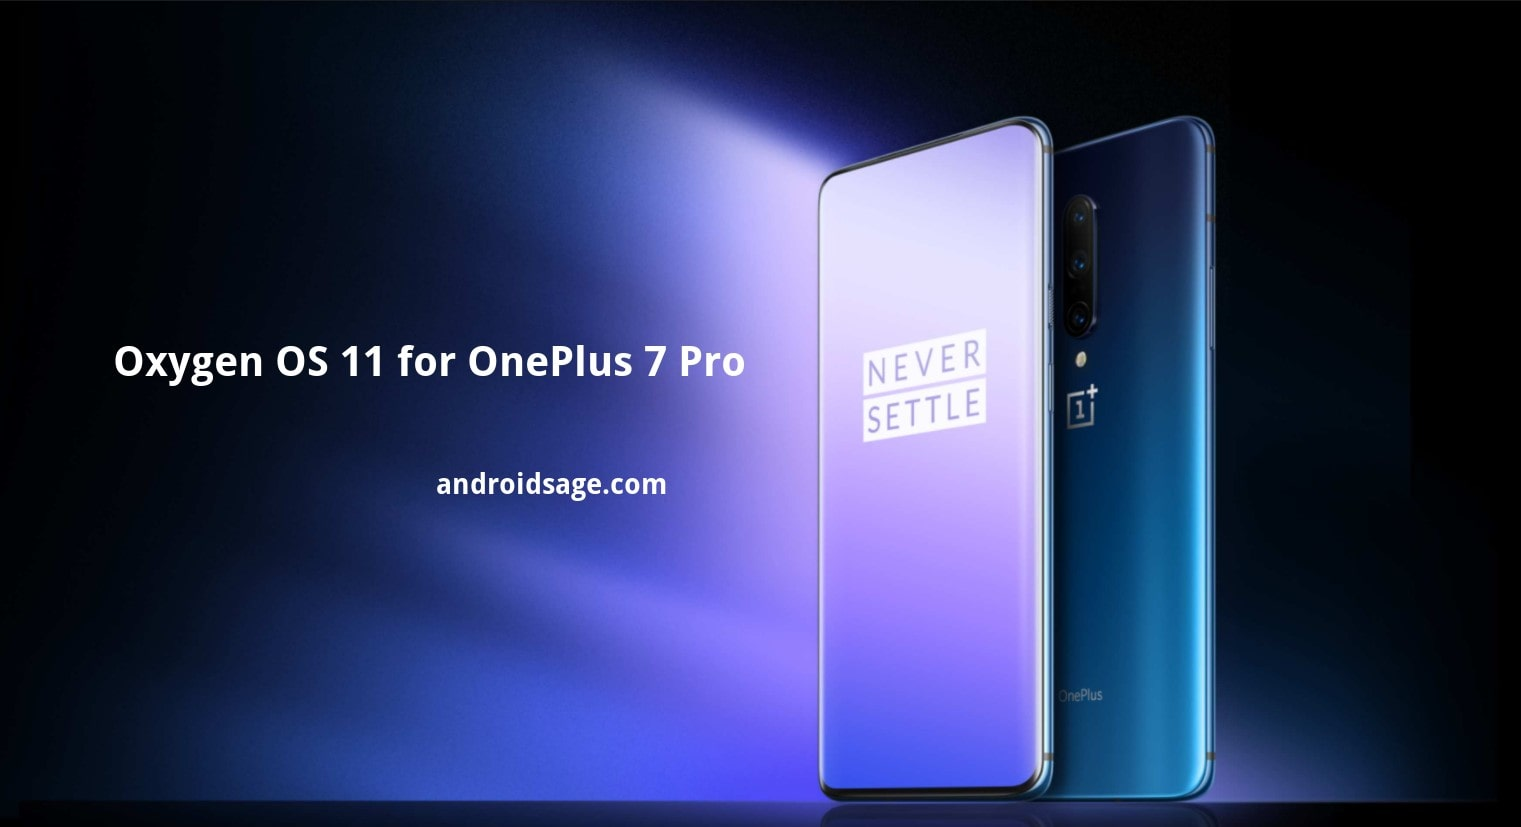 OnePlus 7 Pro Android 11 based on Oxygen OS 11 download